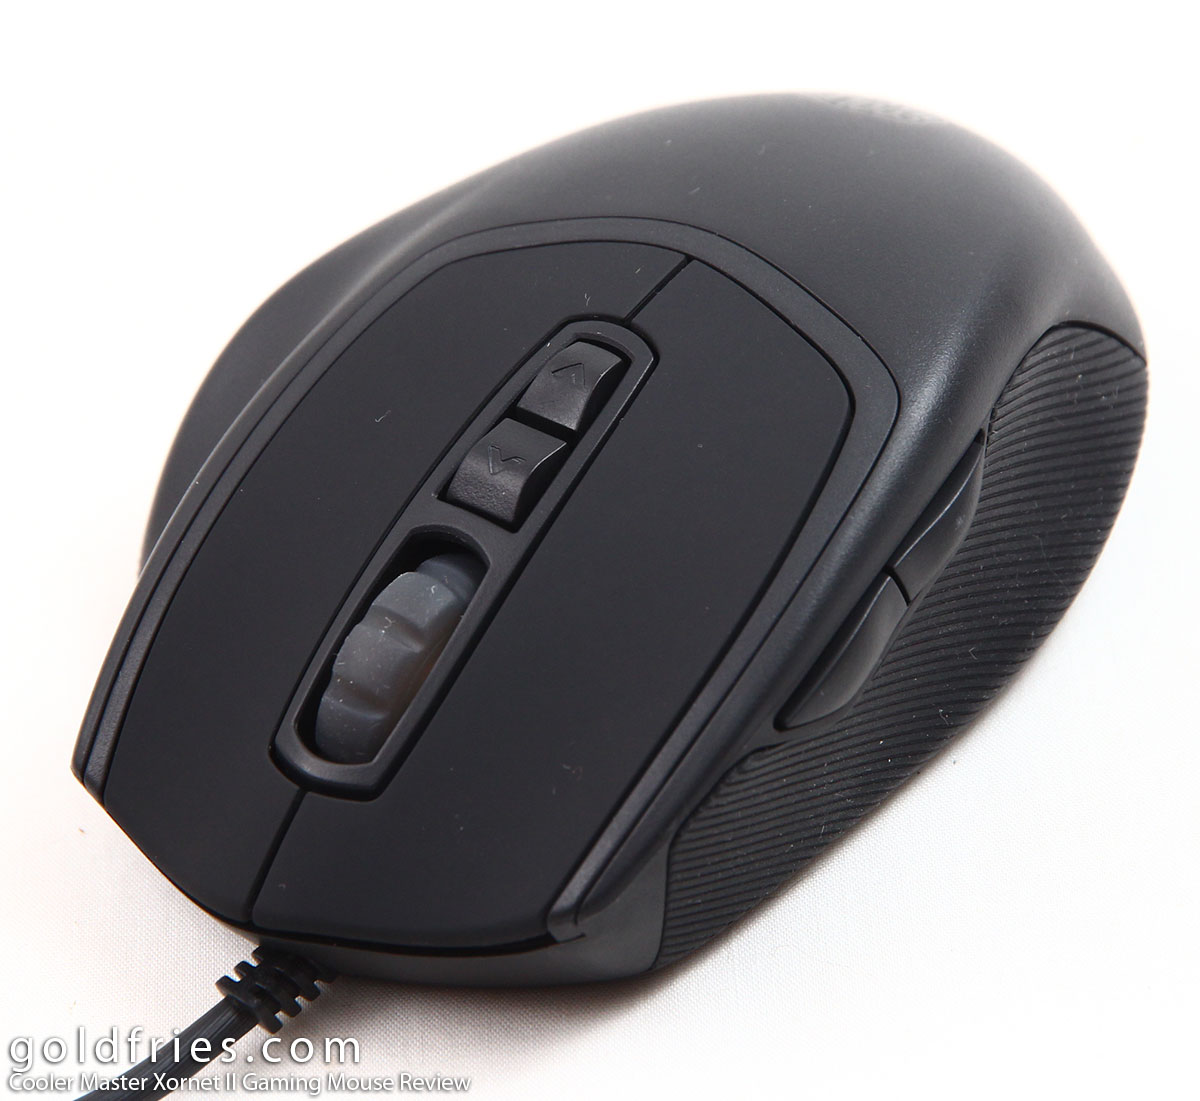 4c9158f2691 Cooler Master Xornet II Gaming Mouse Review ~ goldfries